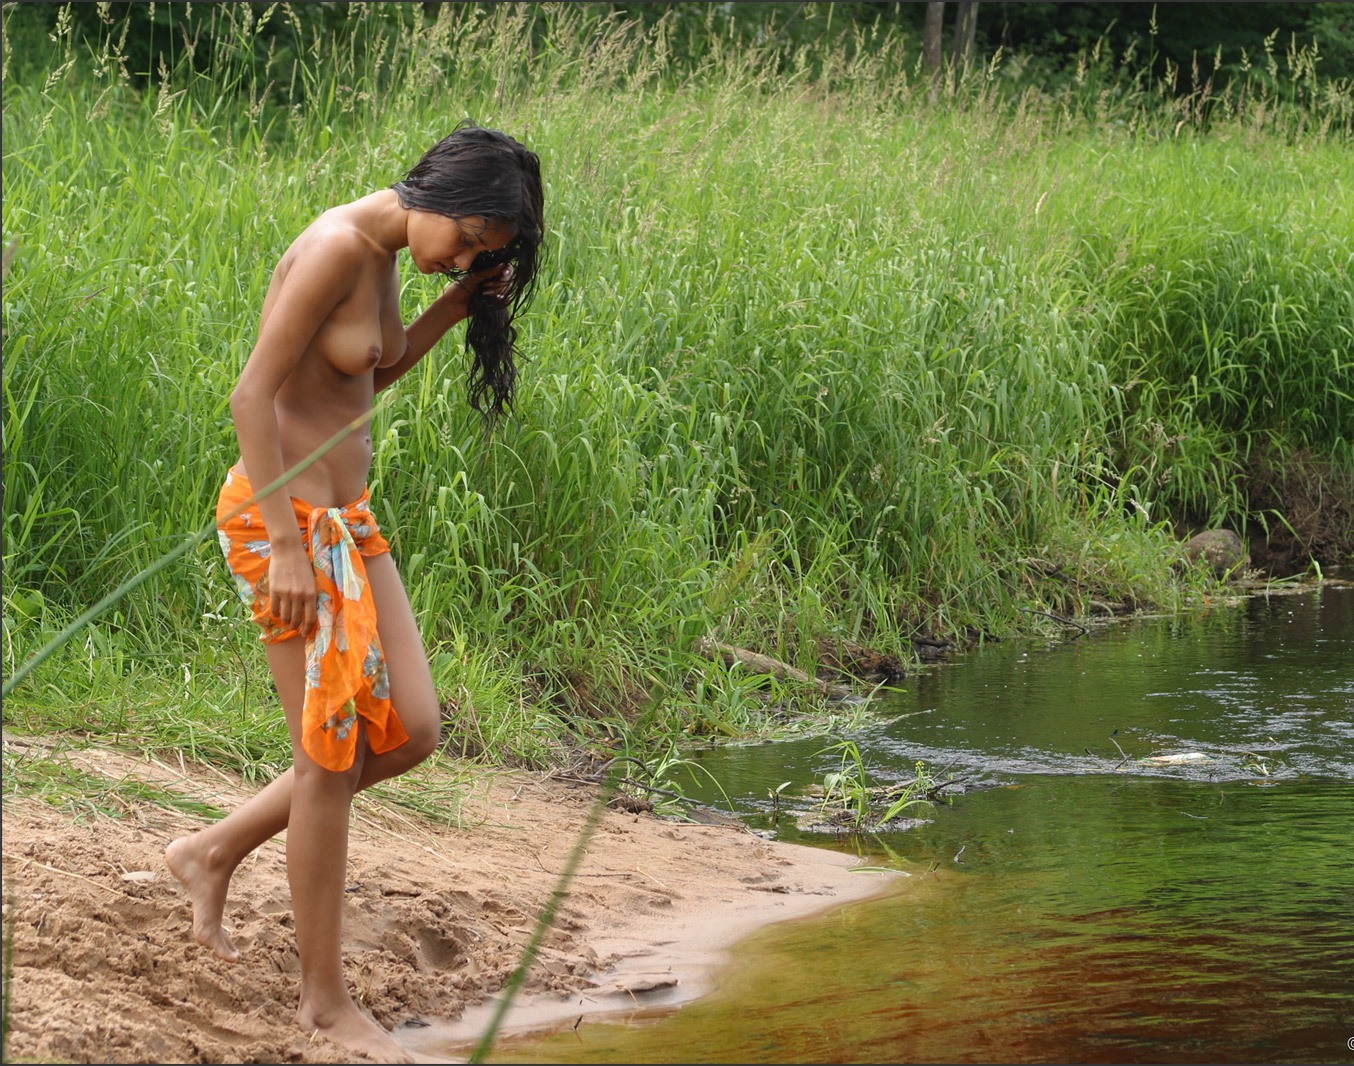 from Ean naked indian girl naked bathing